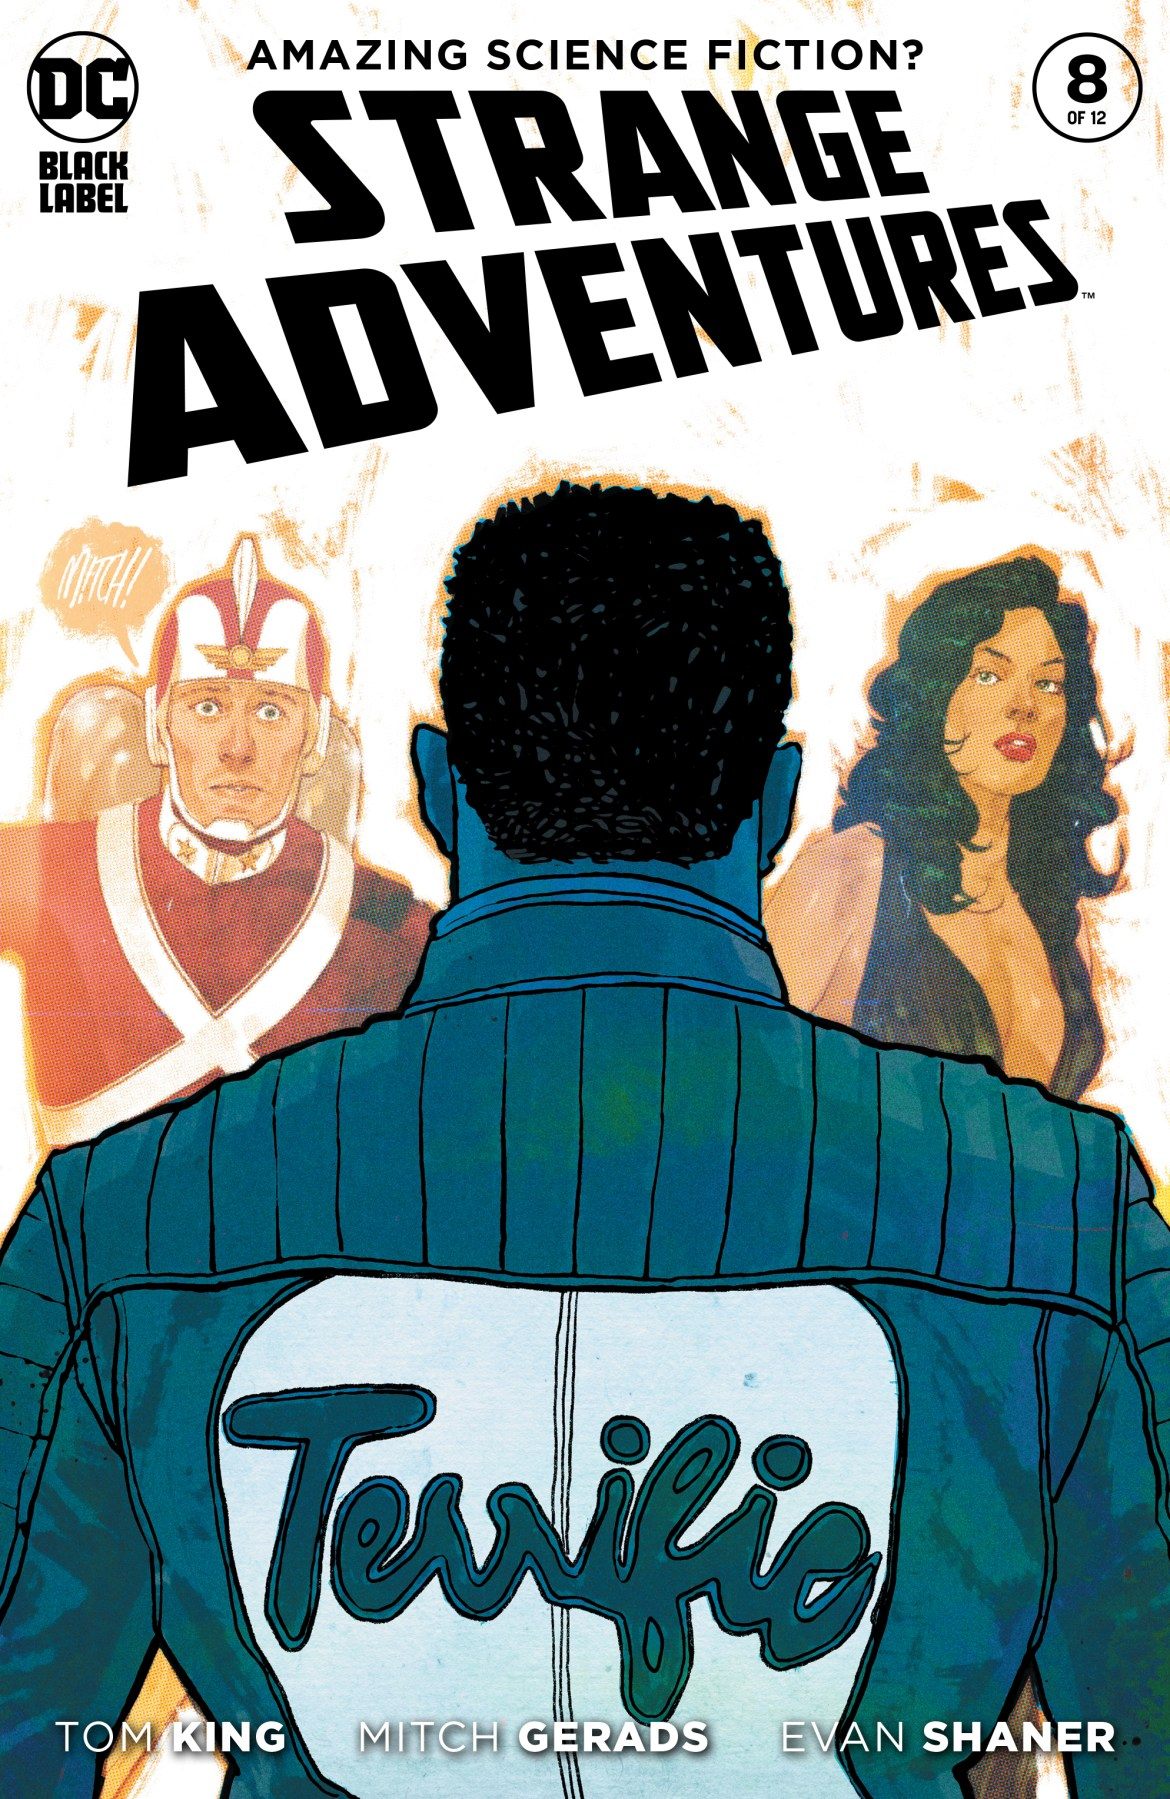 1020DC077 ComicList: DC Comics New Releases for 01/27/2021